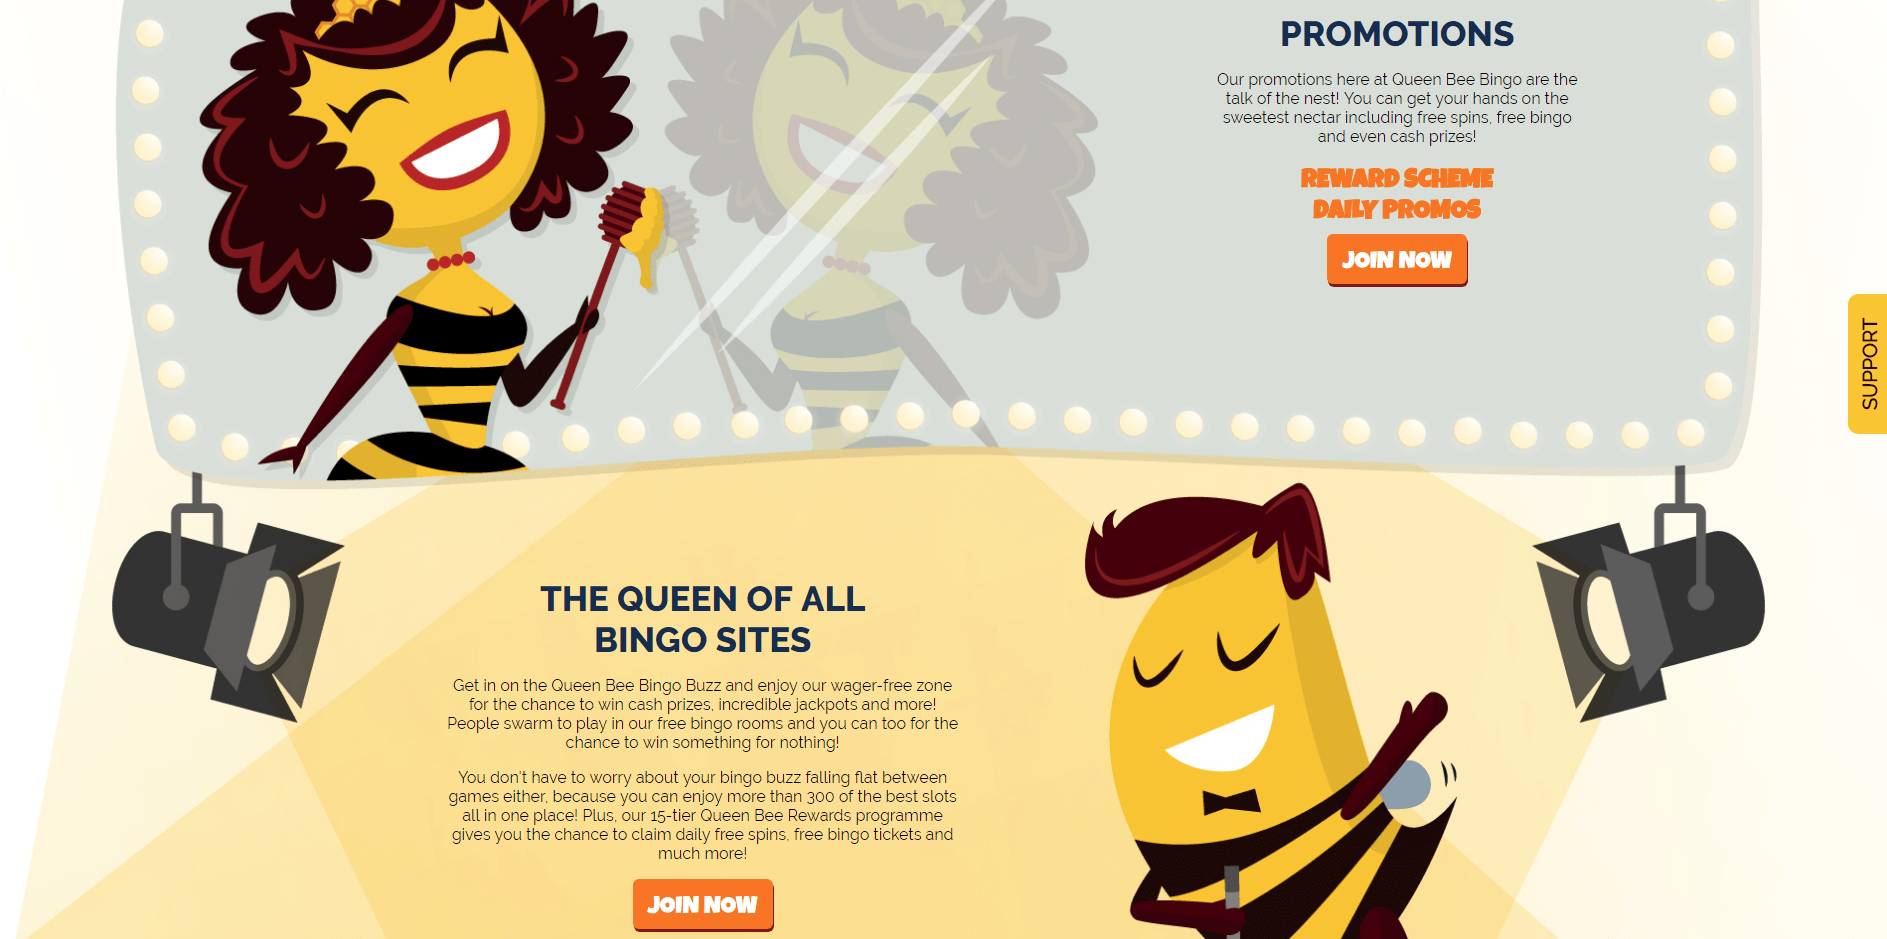 Queen Bee Promotions